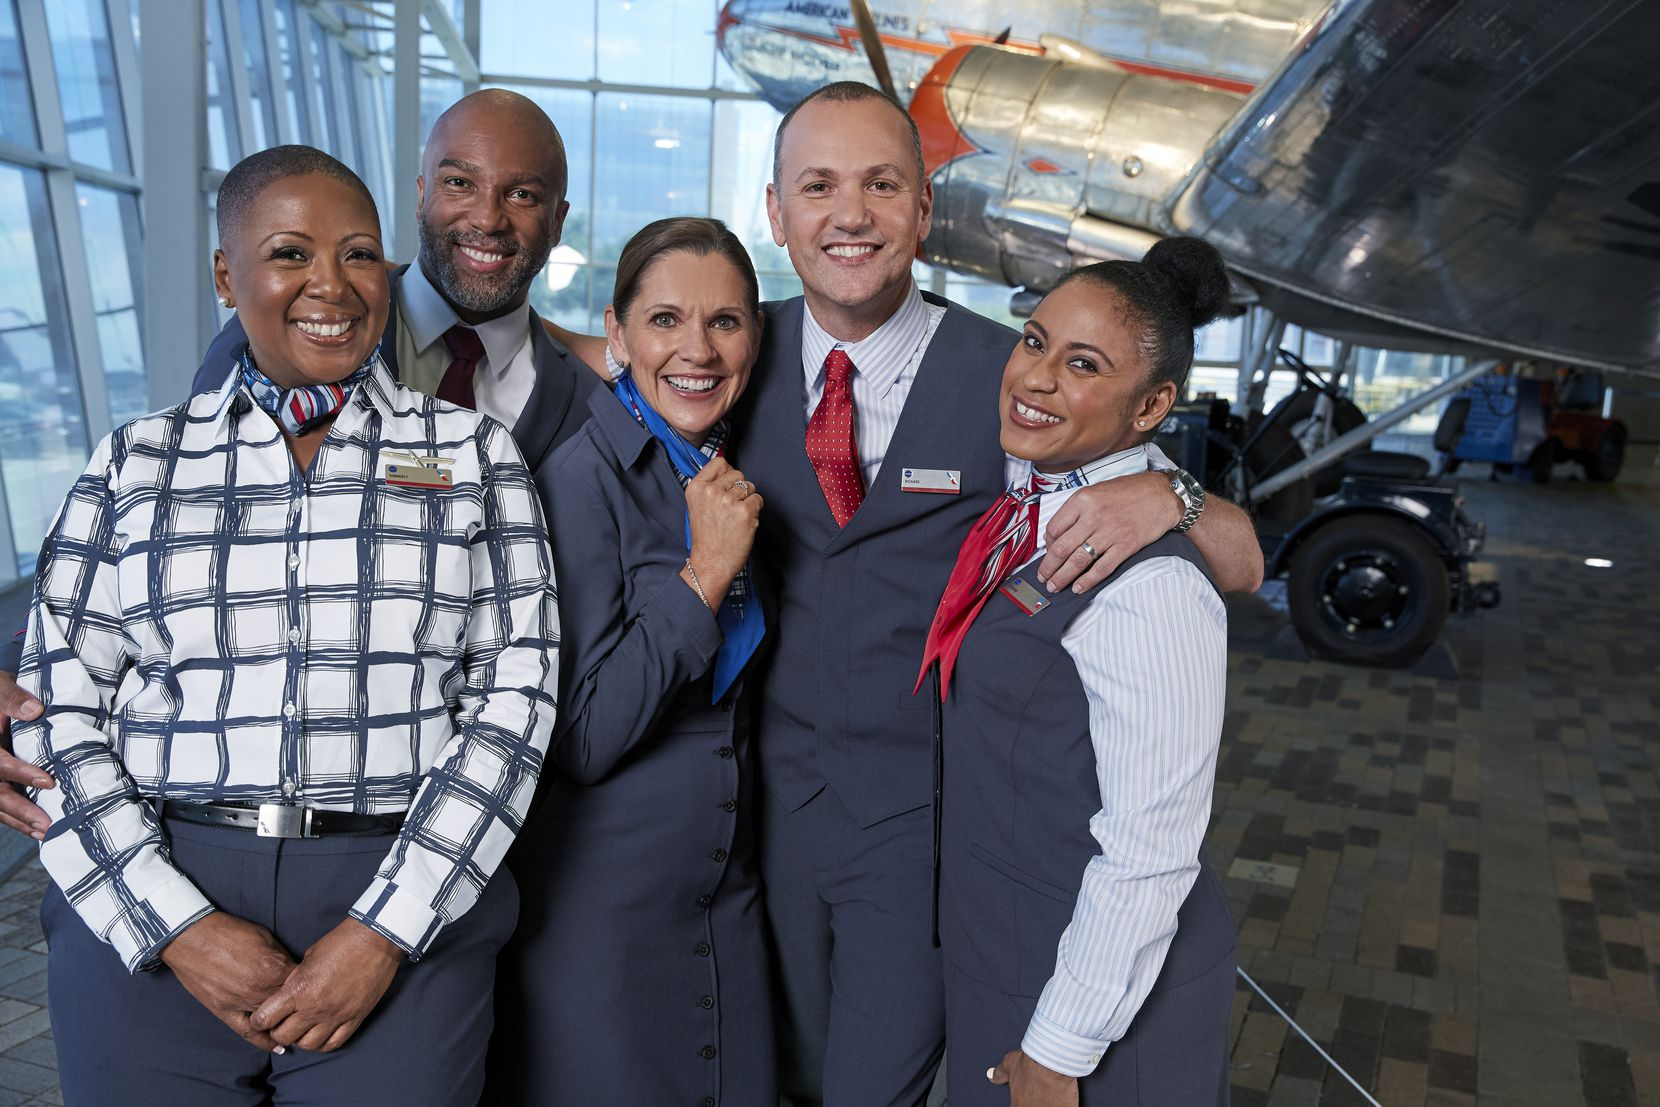 American Airlines employees wearing their new uniforms from Lands' End, which they will start wearing on March 2, 2020.